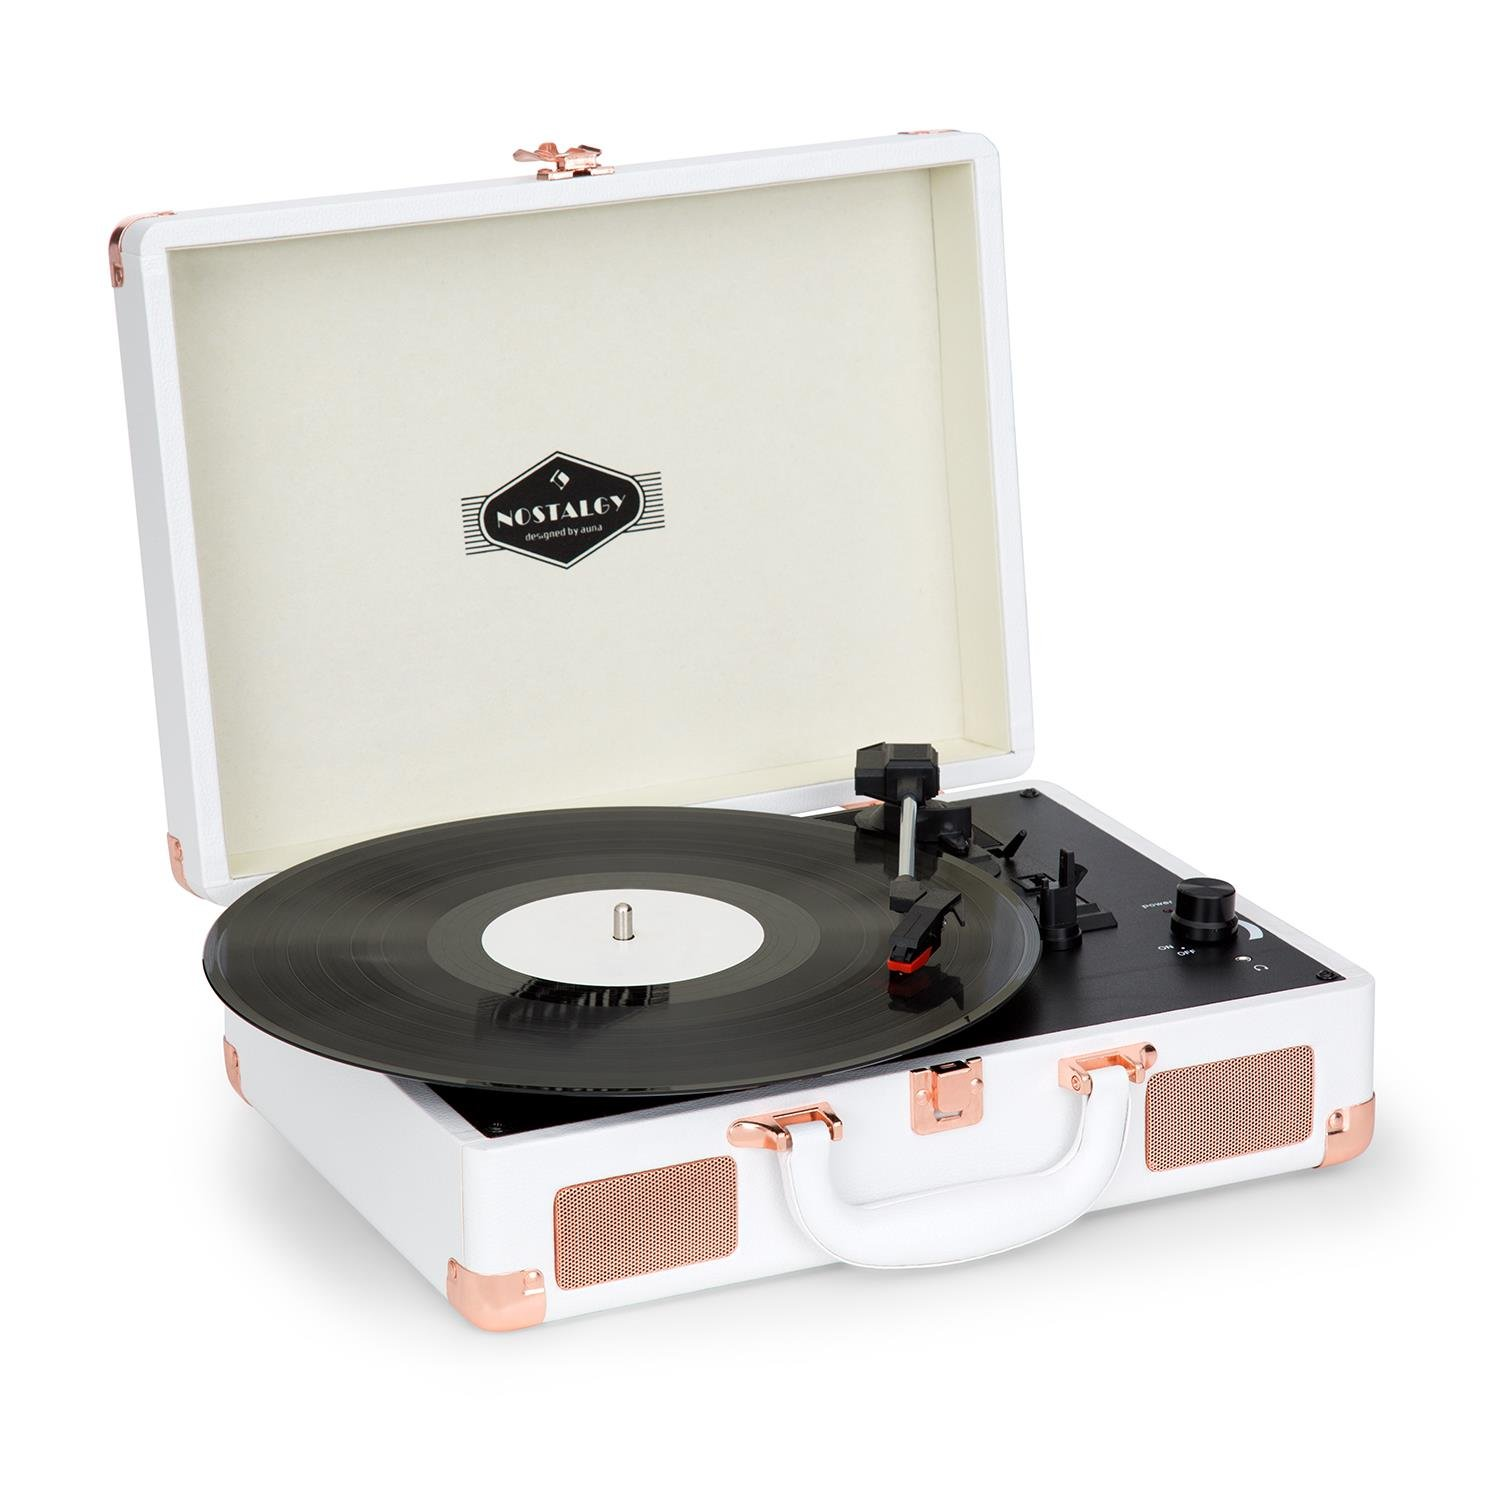 auna Peggy Sue  Record Player  Retro Design  Turntable  Phonograph  Belt-Drive  Stereo Speaker  USB-Port  Vinyl LP  Carrying Strap  Digitization  Plug & Play  Portable Suitcase  White